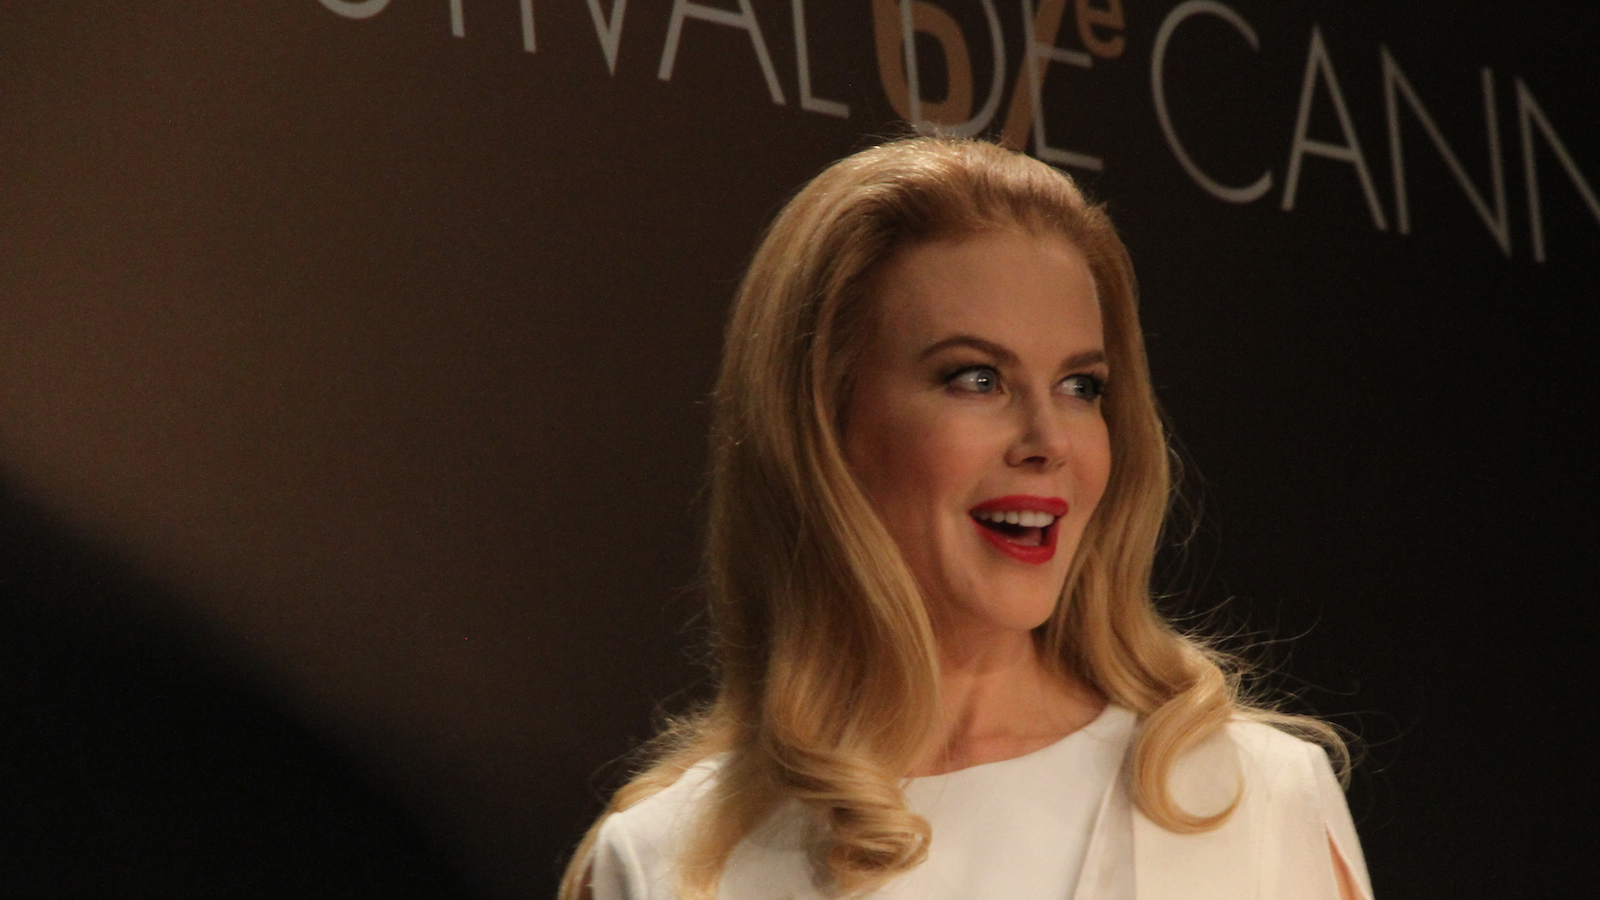 Nicole Kidman in Cannes. (Photo by Brian D. Johnson)